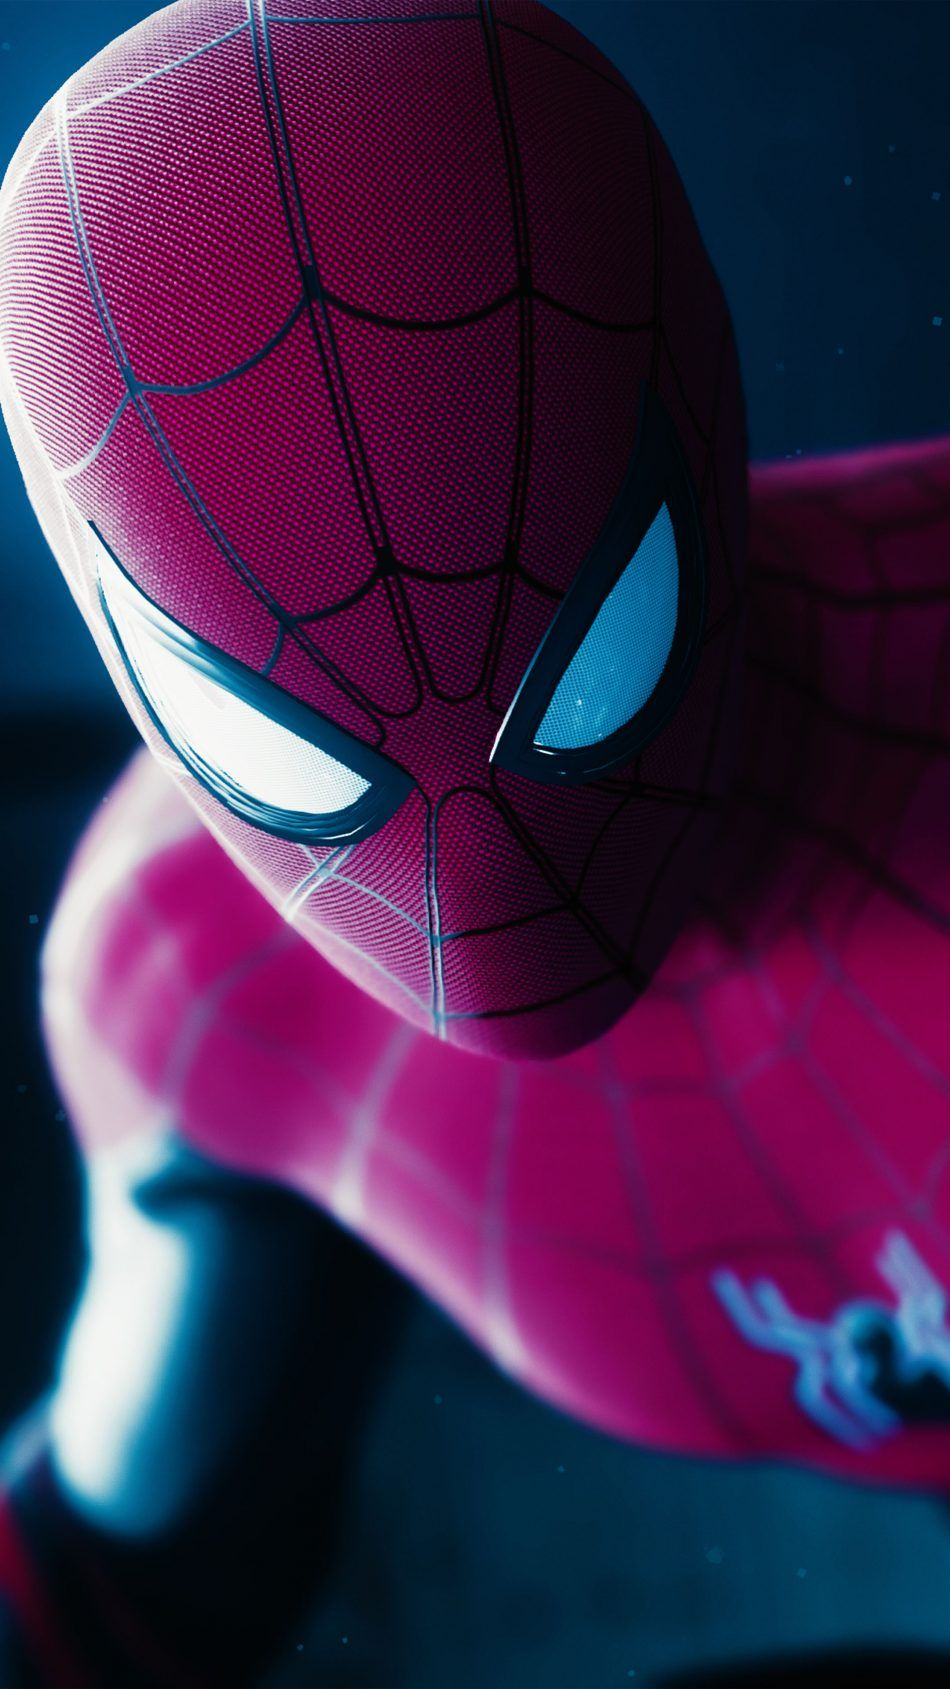 Spider Man Far From Home Ps4 2019 4k Ultra Hd Mobile Wallpaper Marvel Superhero Posters Marvel Comics Wallpaper Spiderman